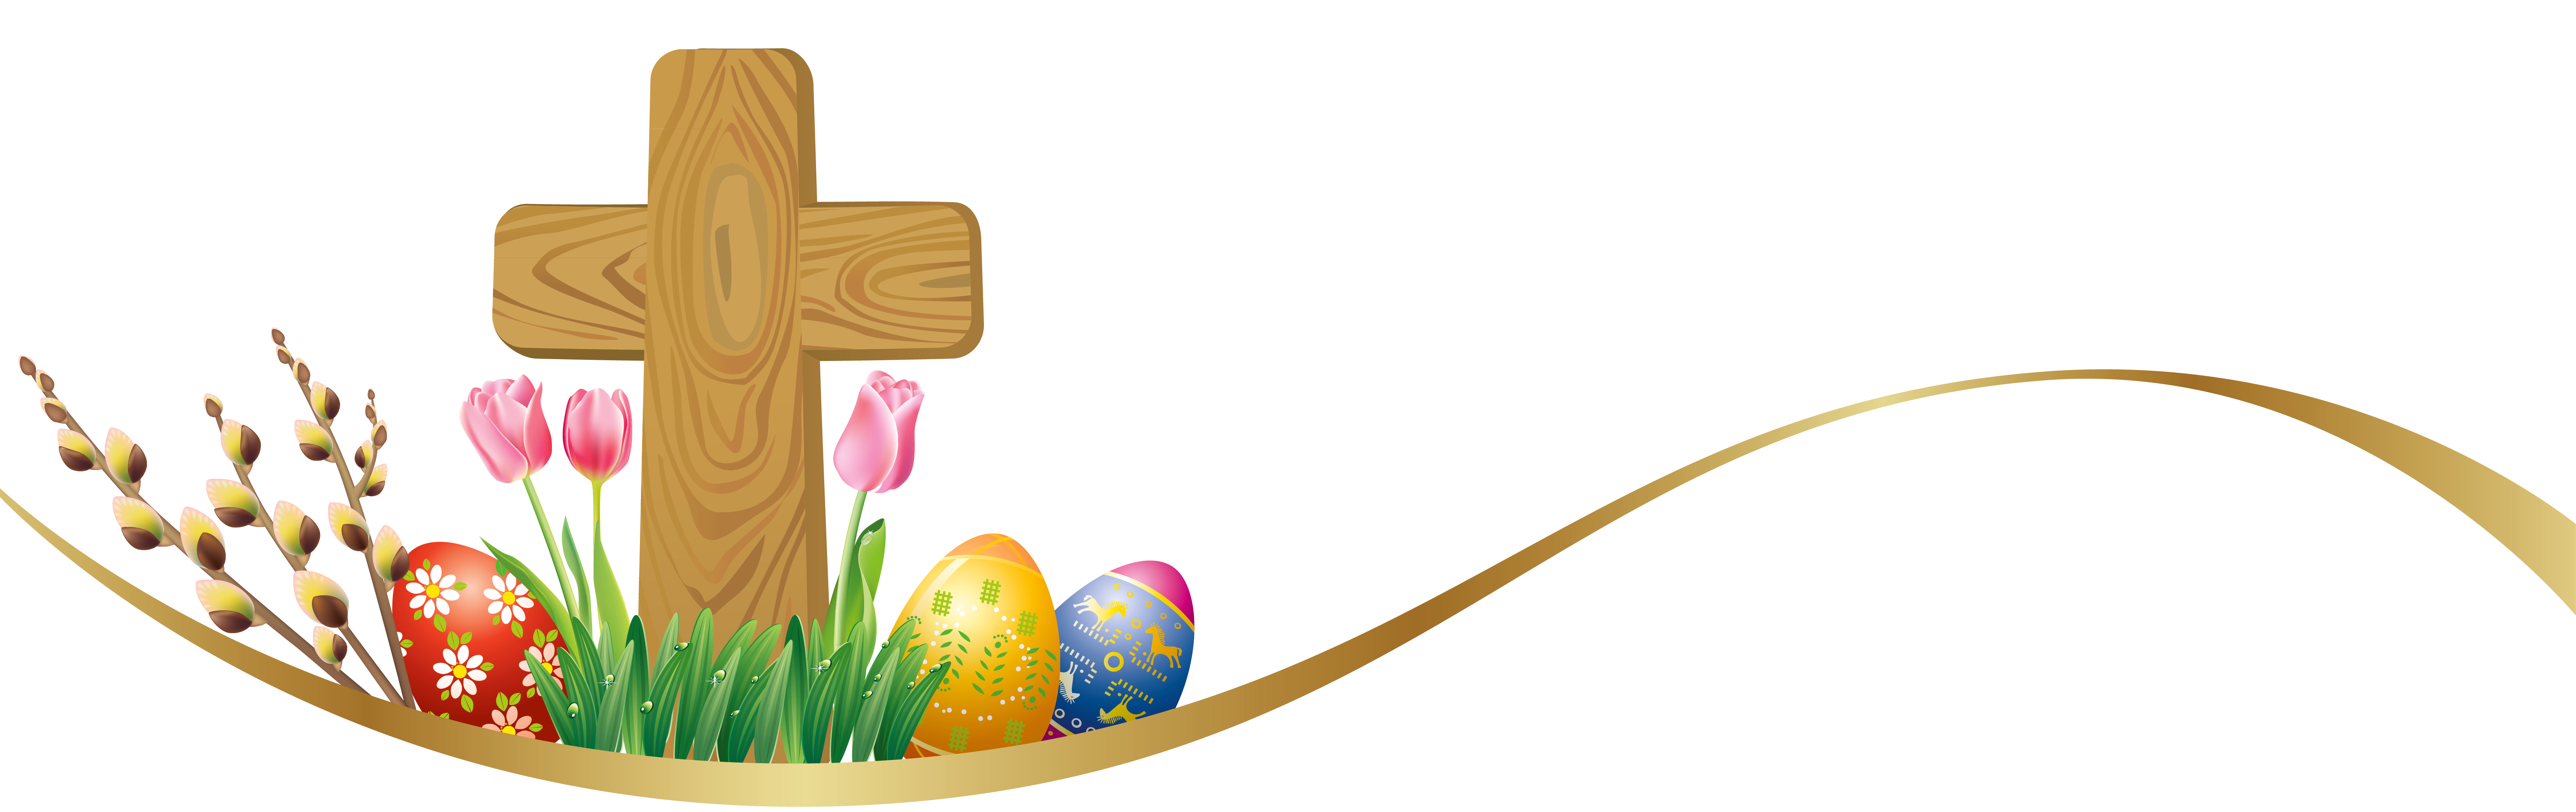 7226x2279 Free Easter Cross Clipart Merry Christmas And Happy New Year 2018